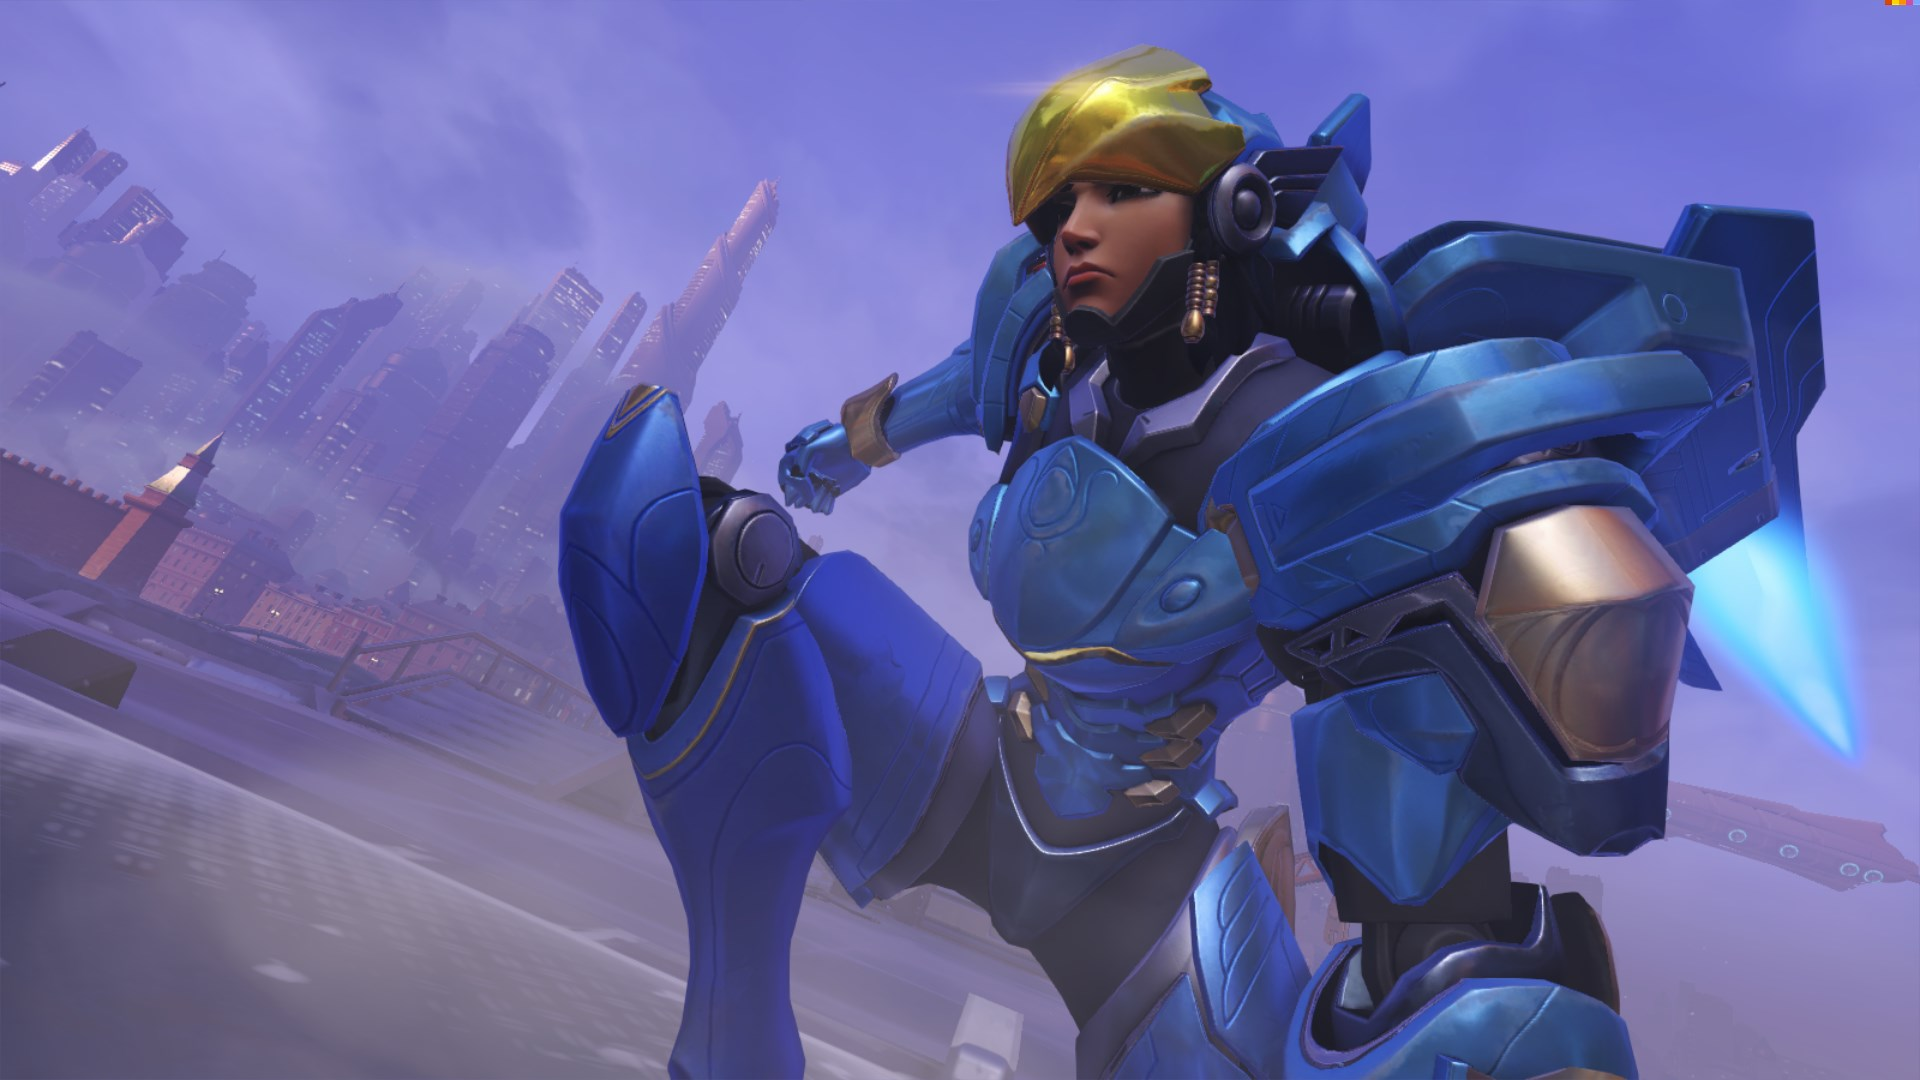 Check out Overwatch's new legendary Pharah skin arriving next week